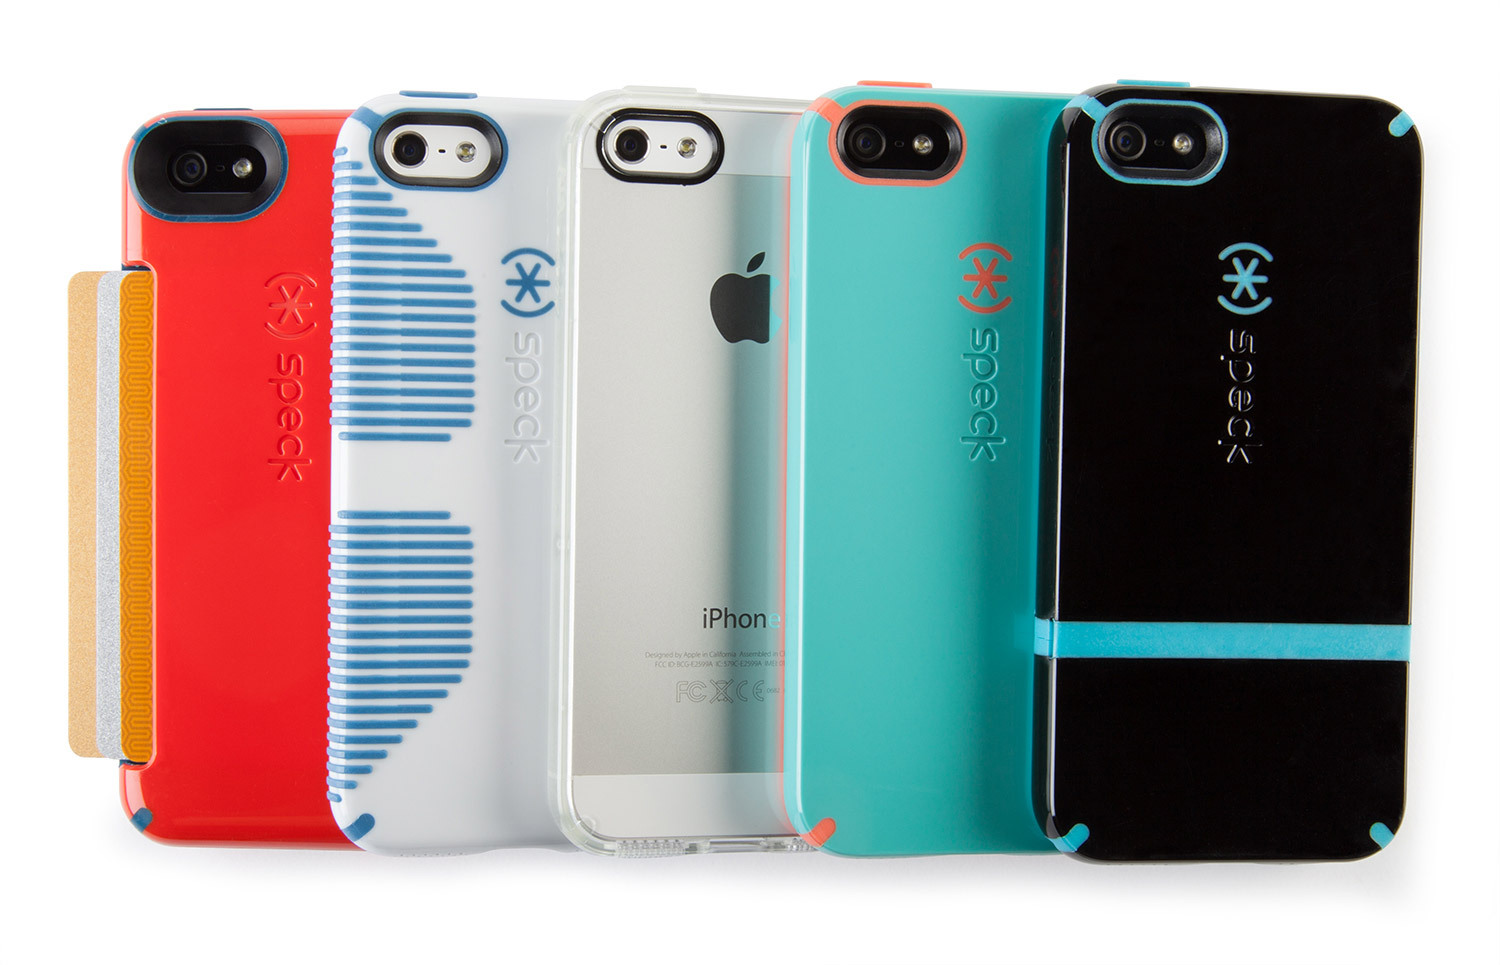 Oct 14, · Speck is a well-known name in the smartphone accessory world, and for good reason. The company produces a wide range of high-quality smartphone cases .